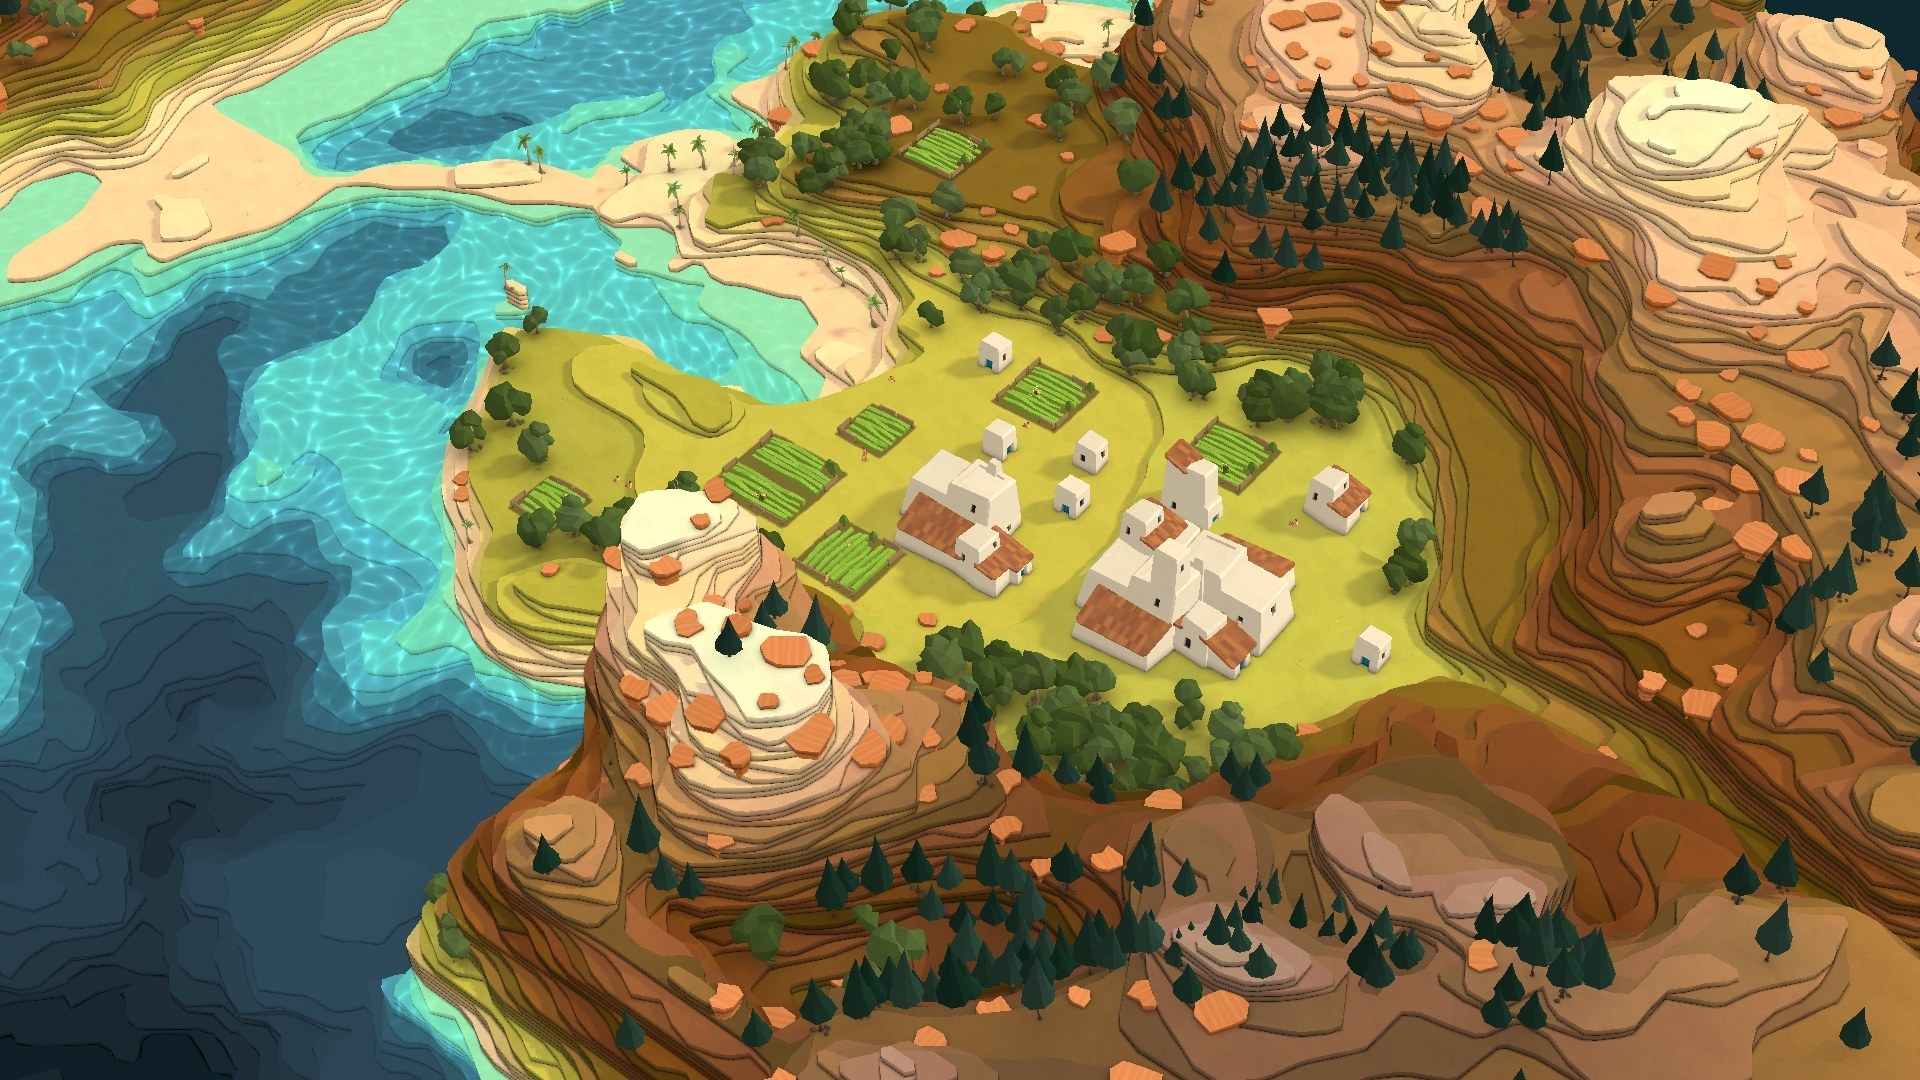 Godus Another Baffling Bizarre Peter Molyneux Game WIRED 1920x1080